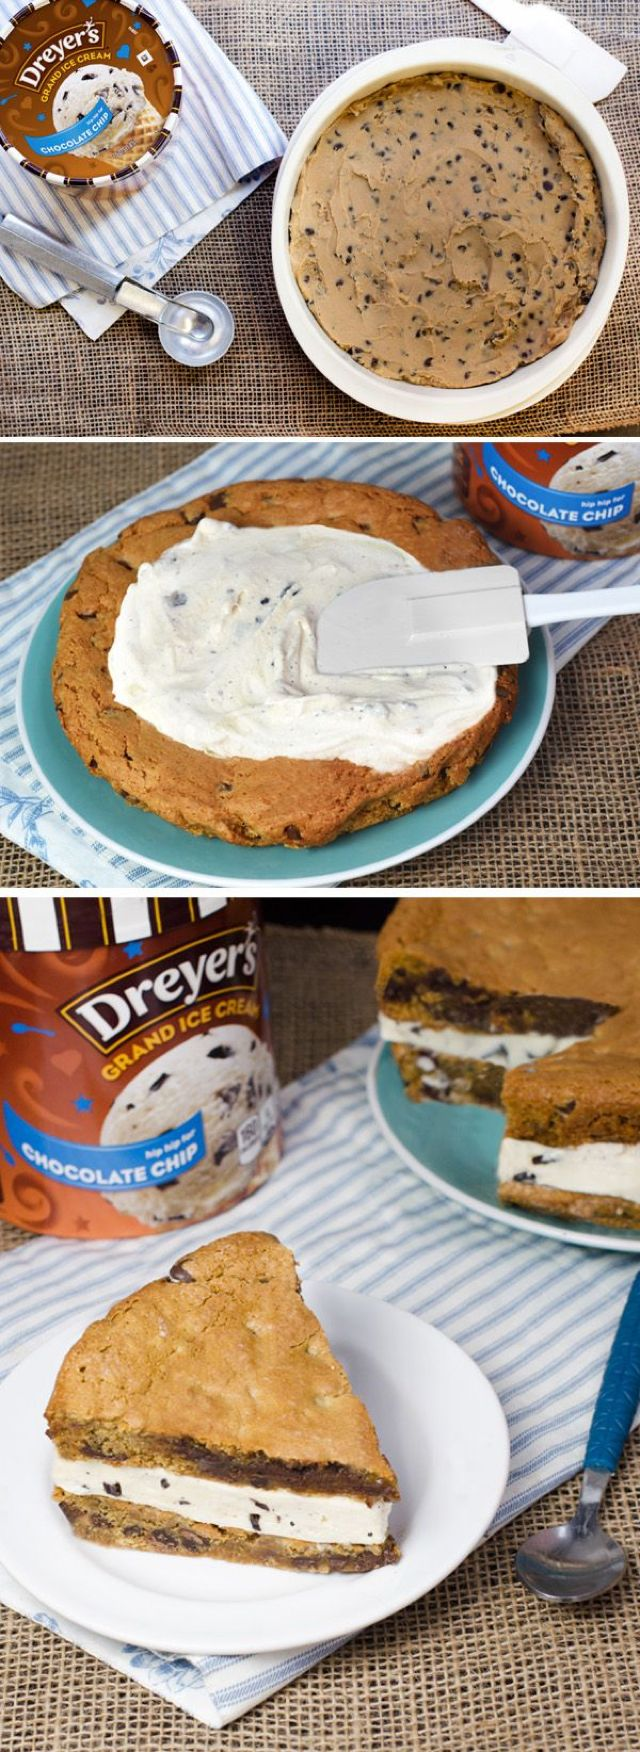 Dreyer's Giant Cookie Ice Cream Cake: This shareable ice cream cookie cake is great for birthday parties, tea parties, pizza parties, sleepover parties – well, just about any party! Start by baking tw...